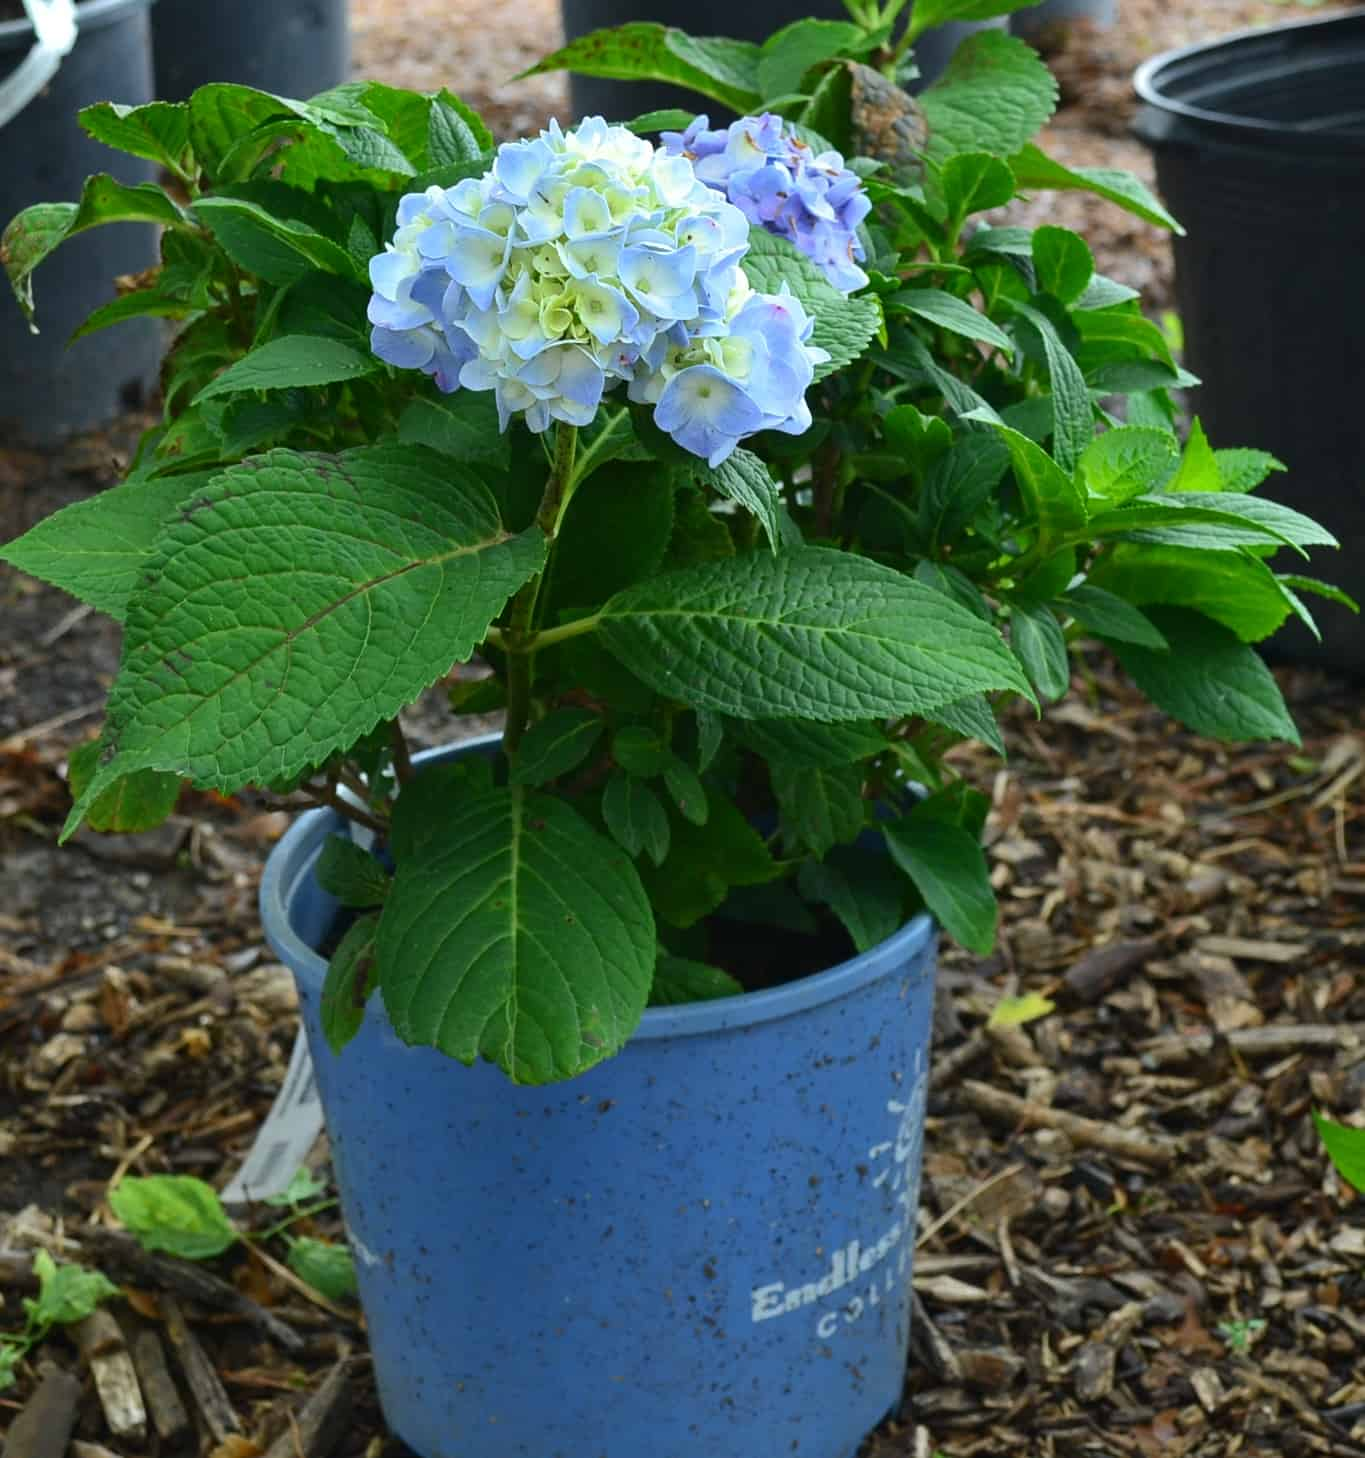 Pictured Above: Hydrangea Endless summer blooming light blue flowers.